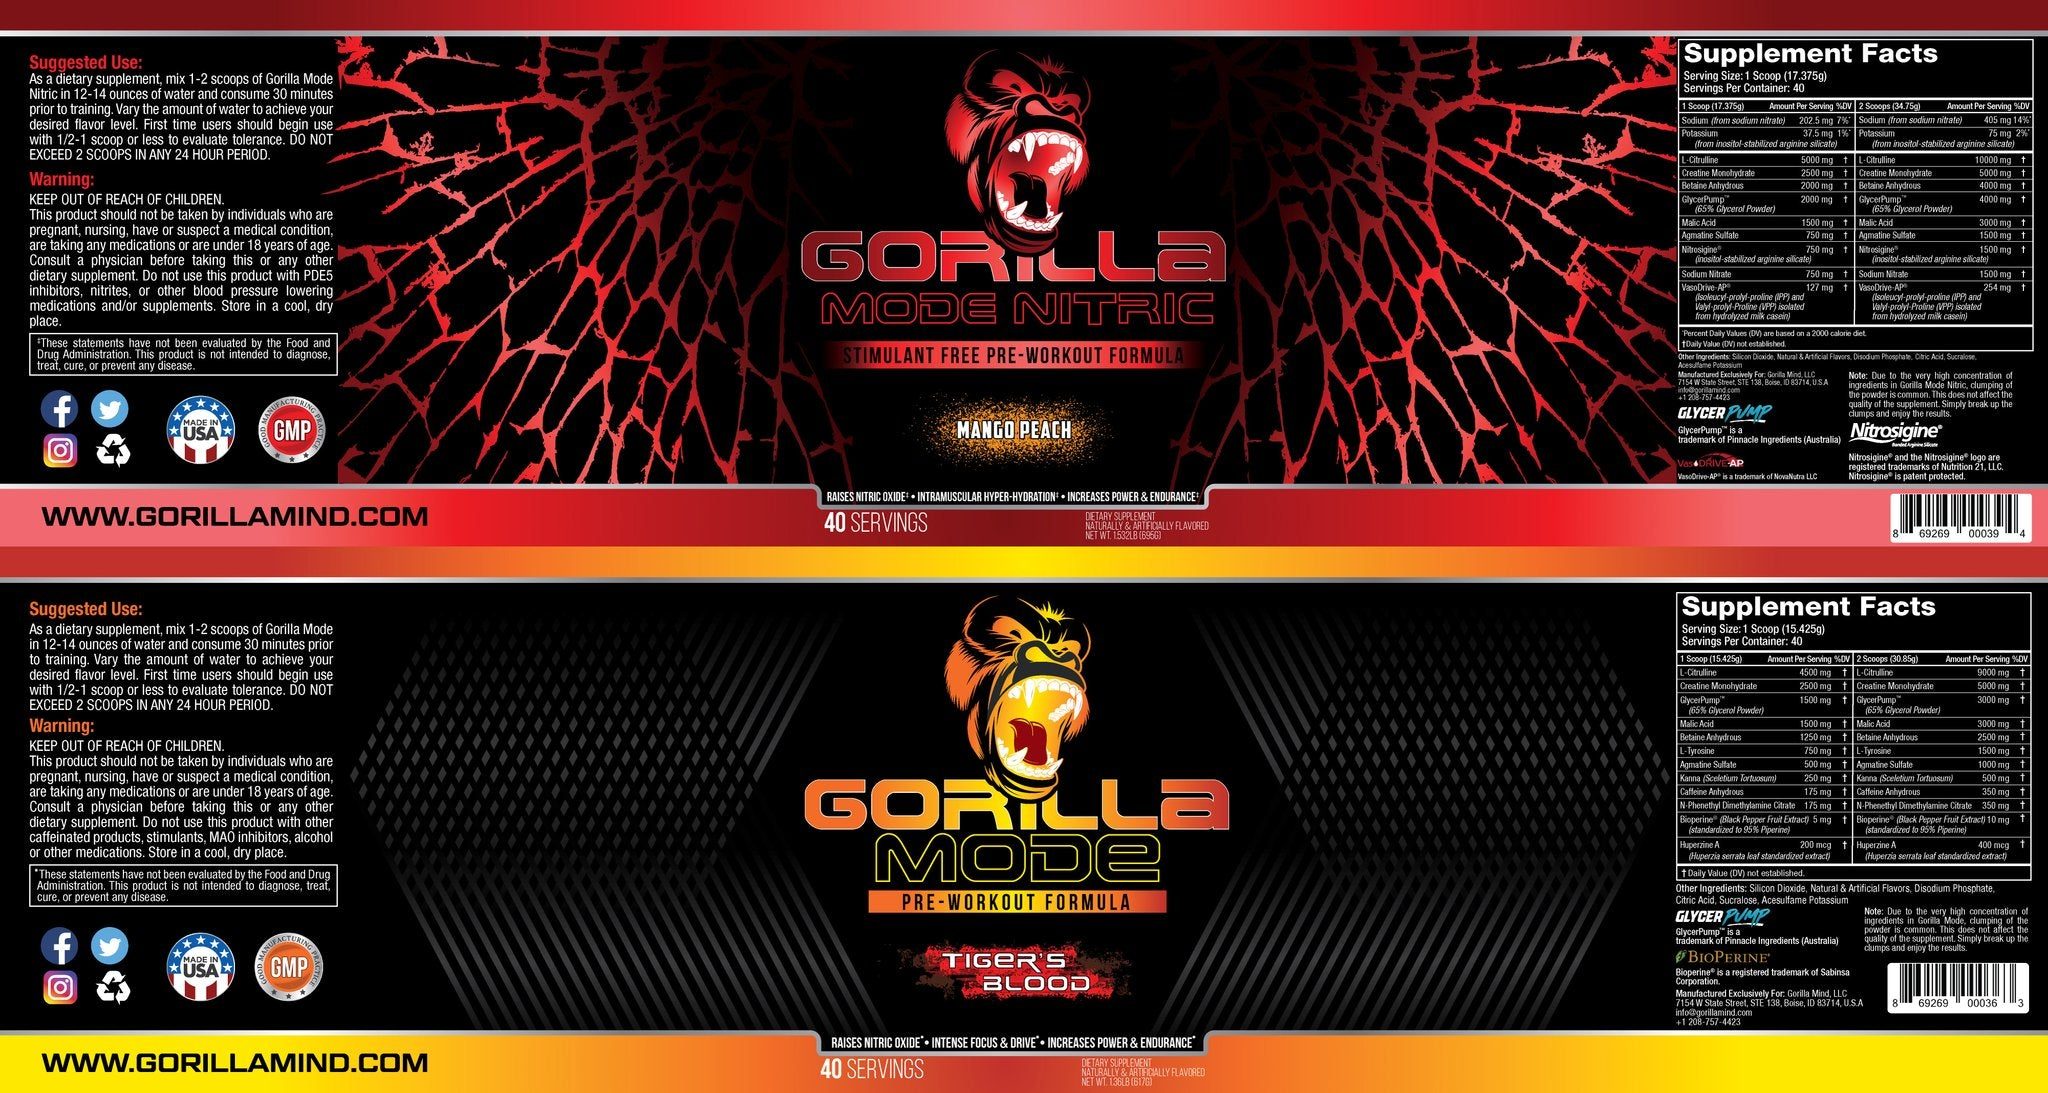 Gorilla Mode + Nitric Bundle Supplement Facts